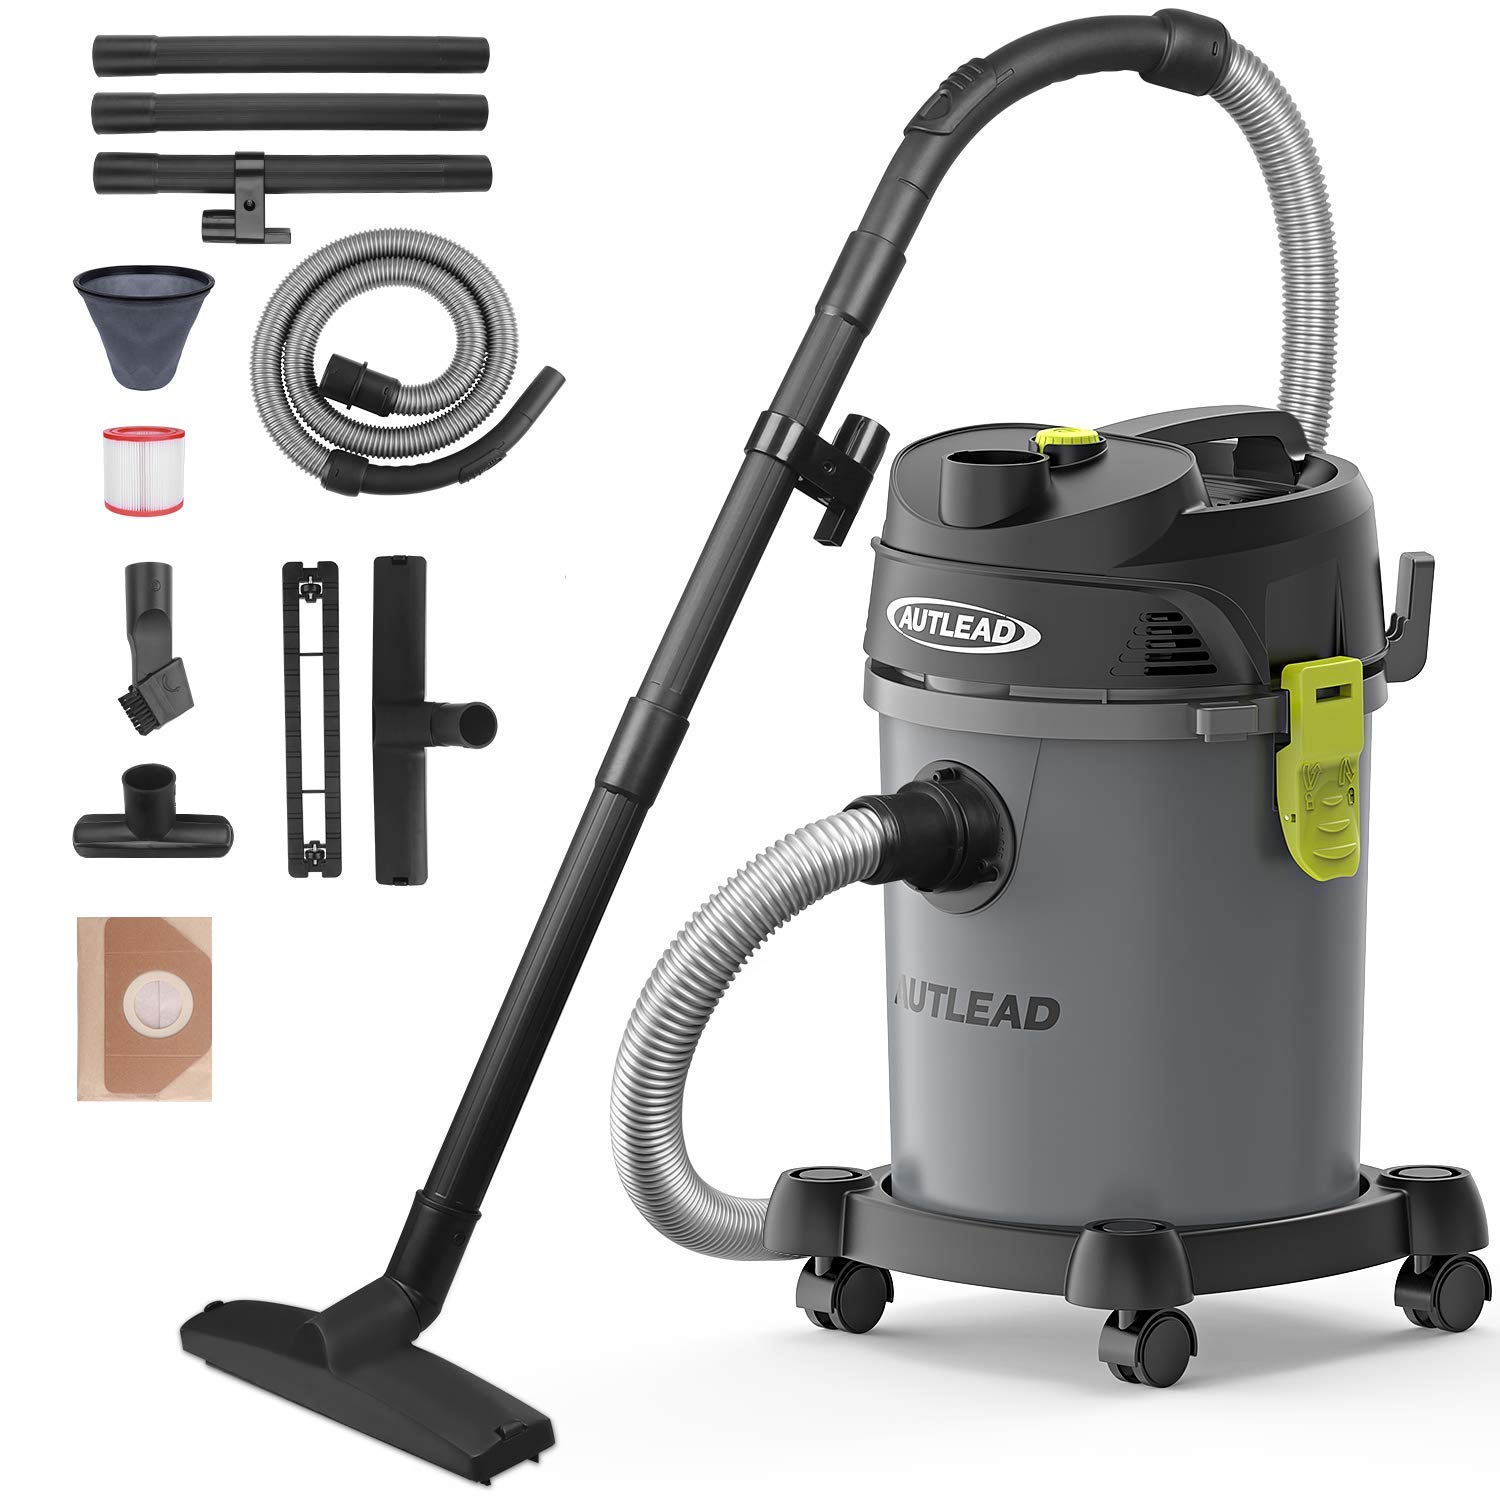 AUTLEAD Vacuum WDS02A 5 Gallon Pure Copper Motor 5.5 HP Wet/Dry/Blow 3 in 1 Shop Vac, Stable Round Bucket Design with Pulley System, HEPA Disposable Bag, 3 Brush Included, 5.5 Gallon, Black by AUTLEAD